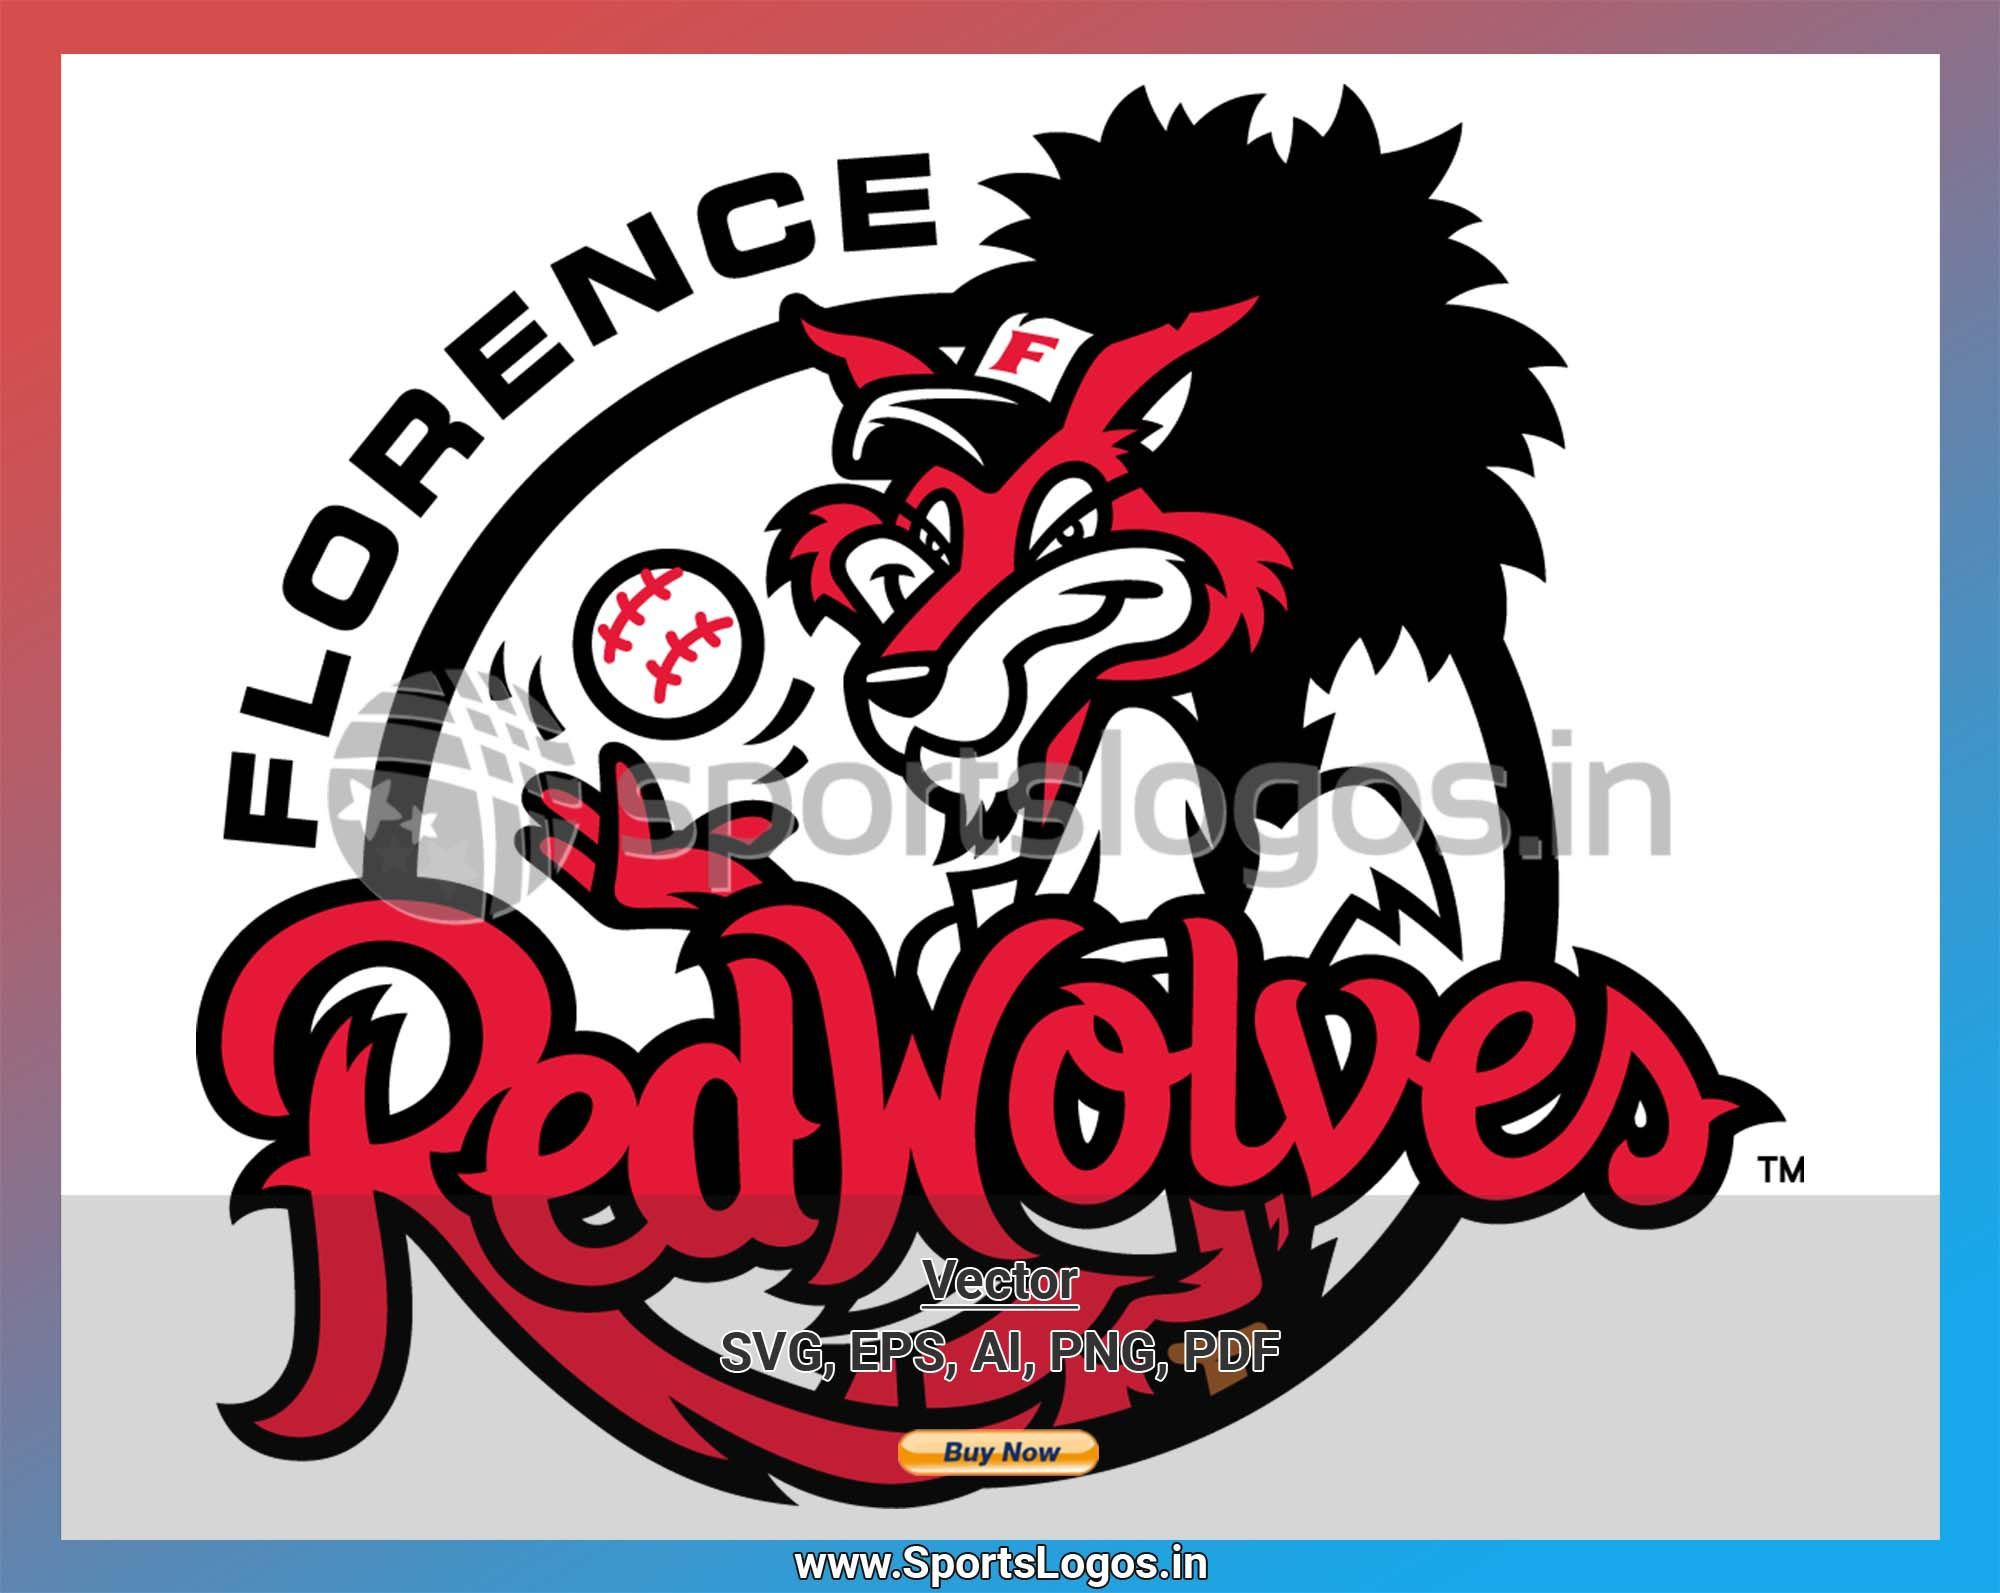 Florence Red Wolves Baseball Sports Vector Svg Logo In 5 Formats Spln001490 Sports Logos Embroidery Vector For Nfl Nba Nhl Mlb Milb And More Sports Baseball Logos Embroidery Logo